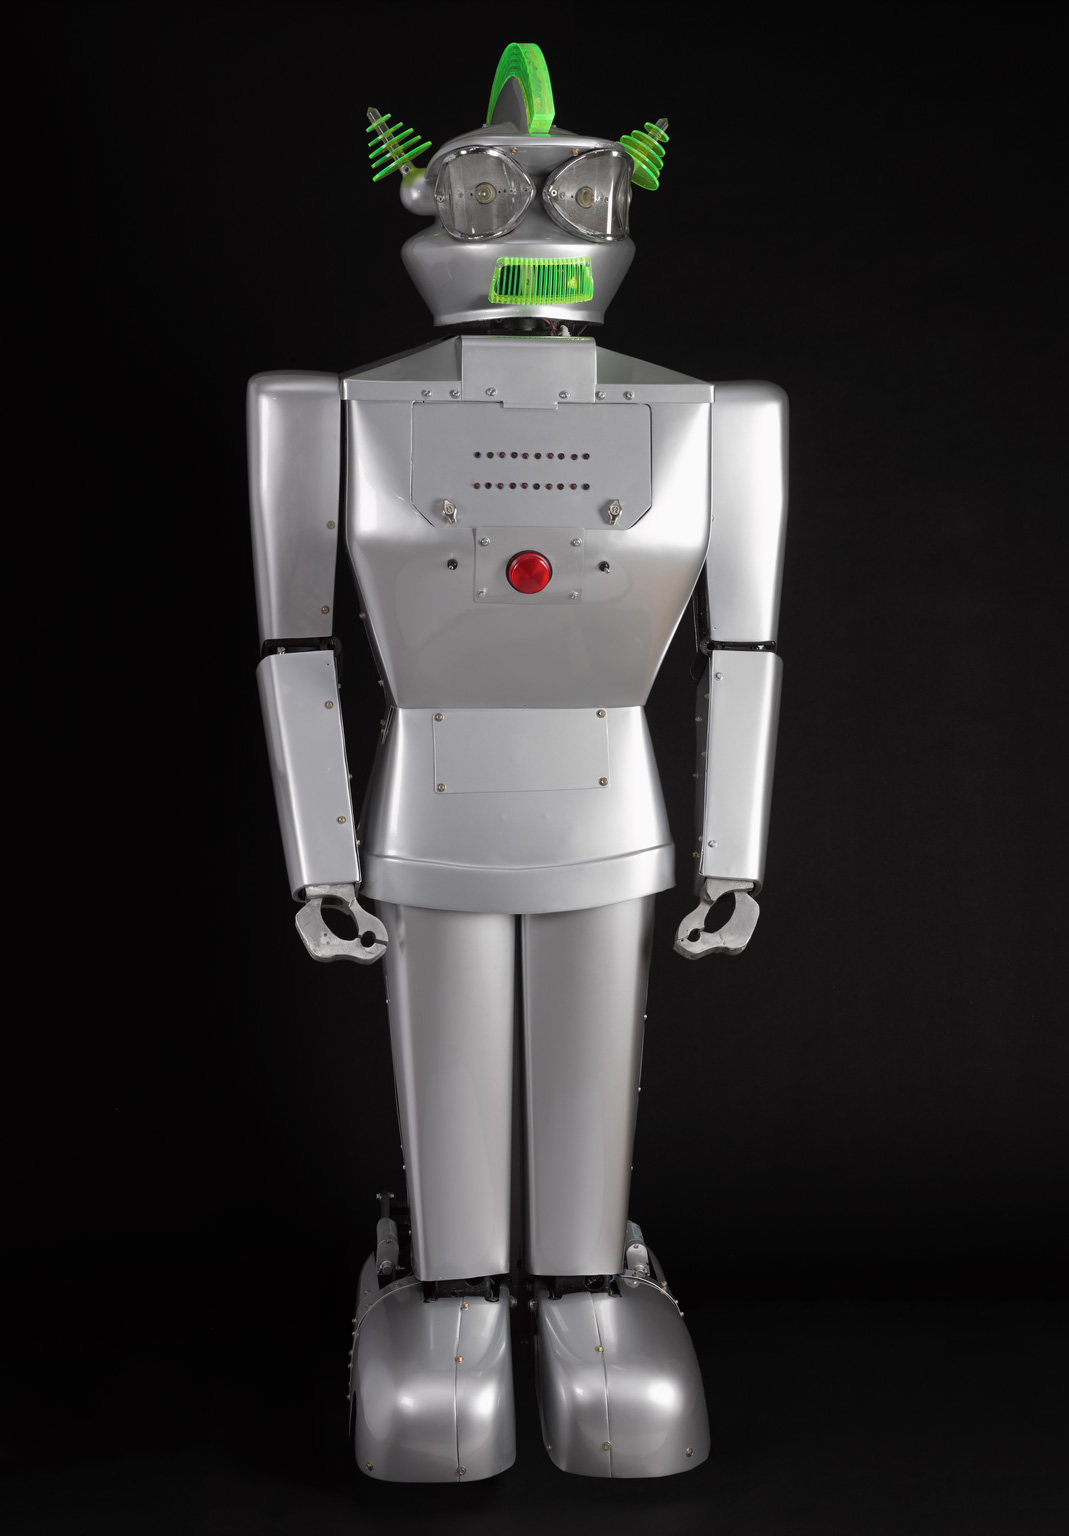 Built Dr Piero Fiorito, Humanoid robot, Cygan, 1957 at Science Museum's Robots - © Science Museum / Jerry Wallace (owner)